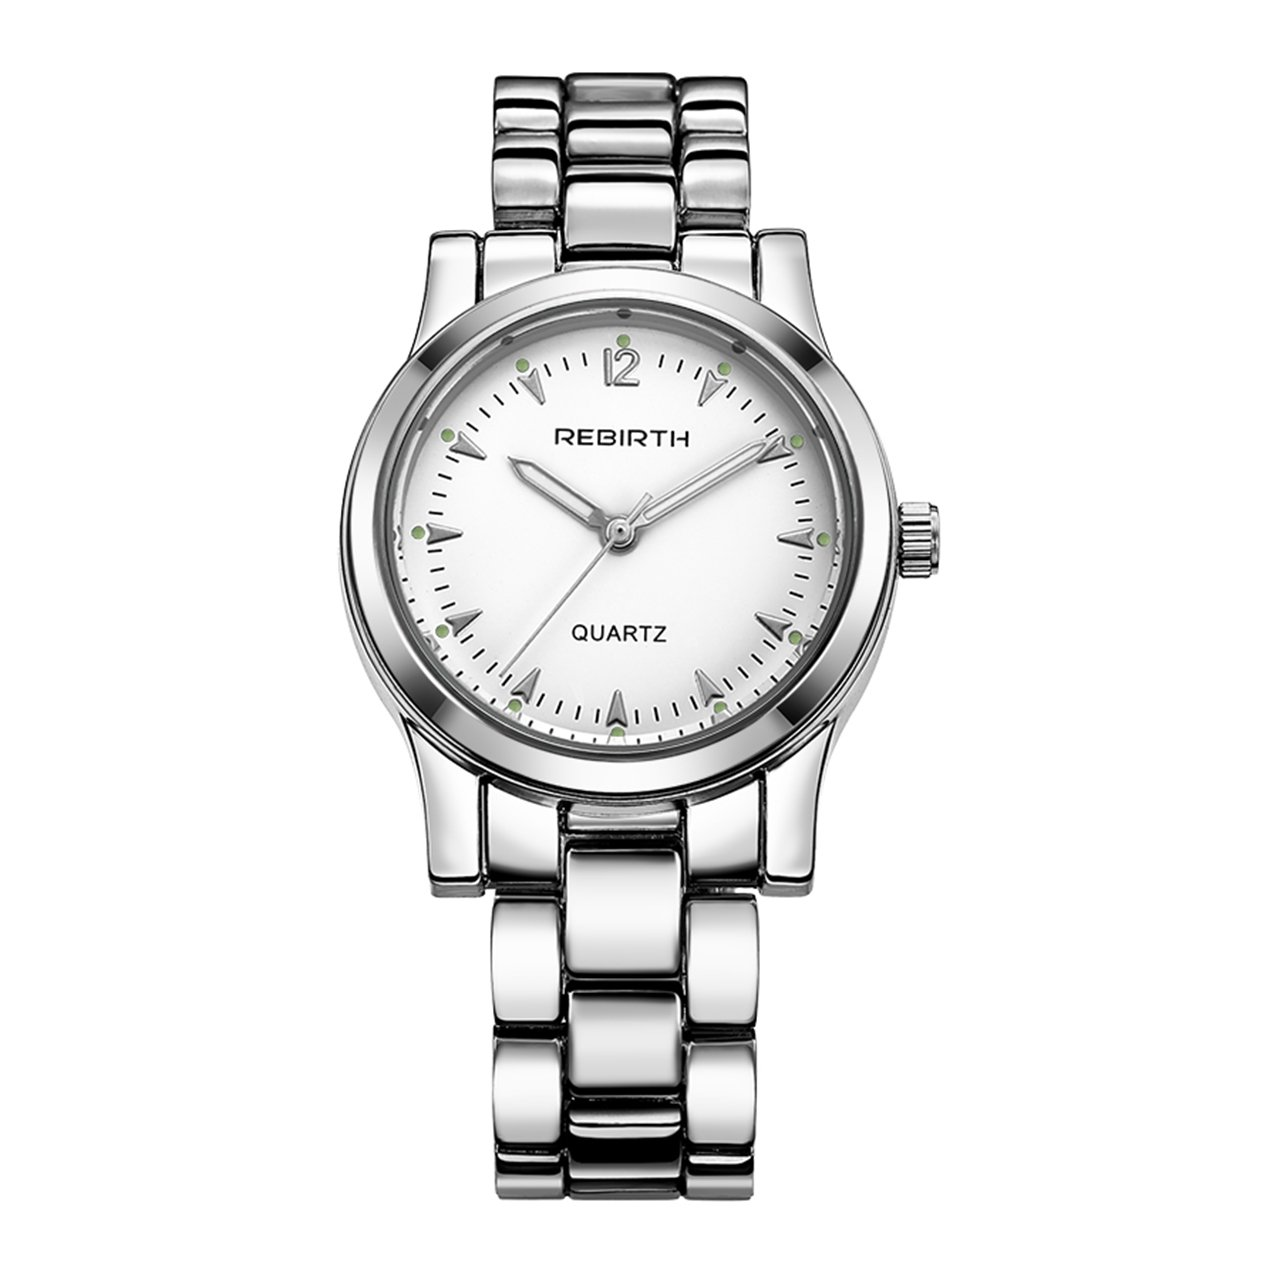 Top Plaza Women Classic Luxury Bracelet Watch Arabic Numeral Solid Alloy Strap Jewelry Hidden Buckle Analog Quartz Watch 3ATM Waterproof(Silver Tone White Dial)